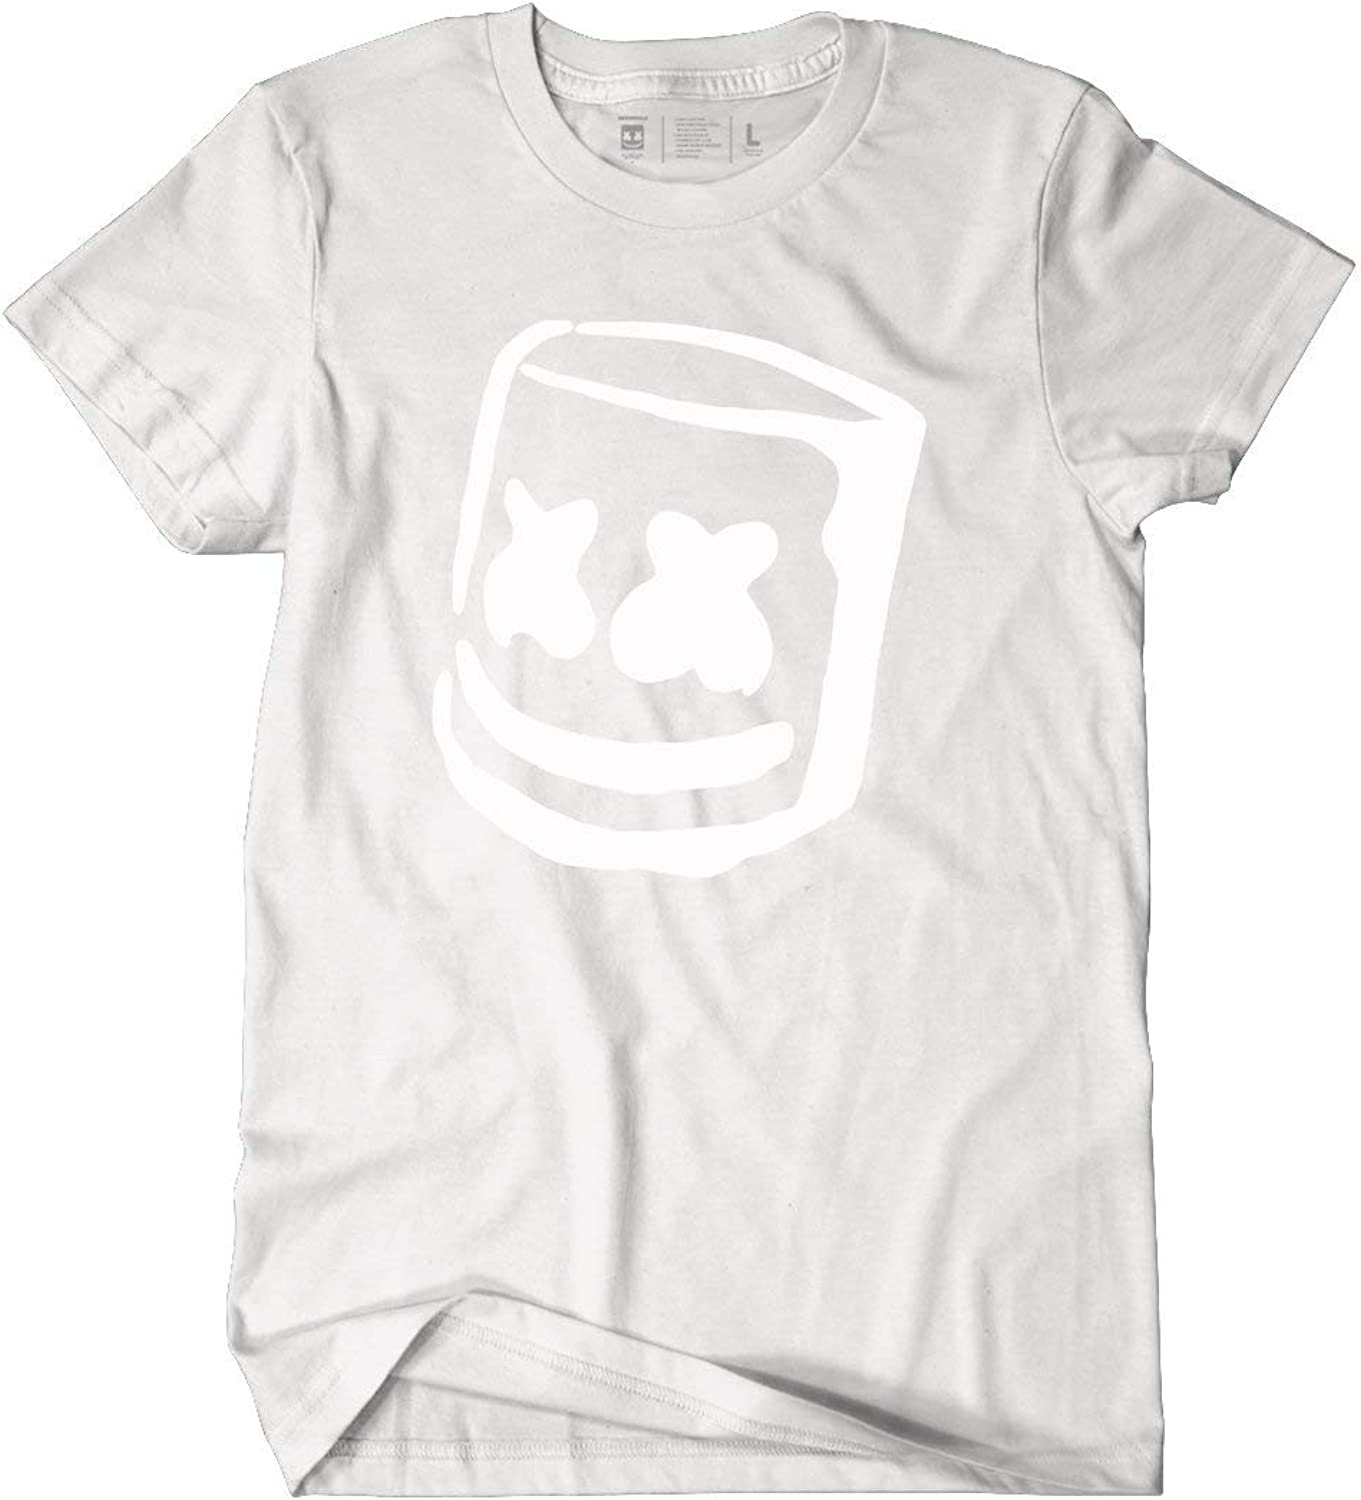 Marshmello Mellogang Black or White Unisex Cotton Tee